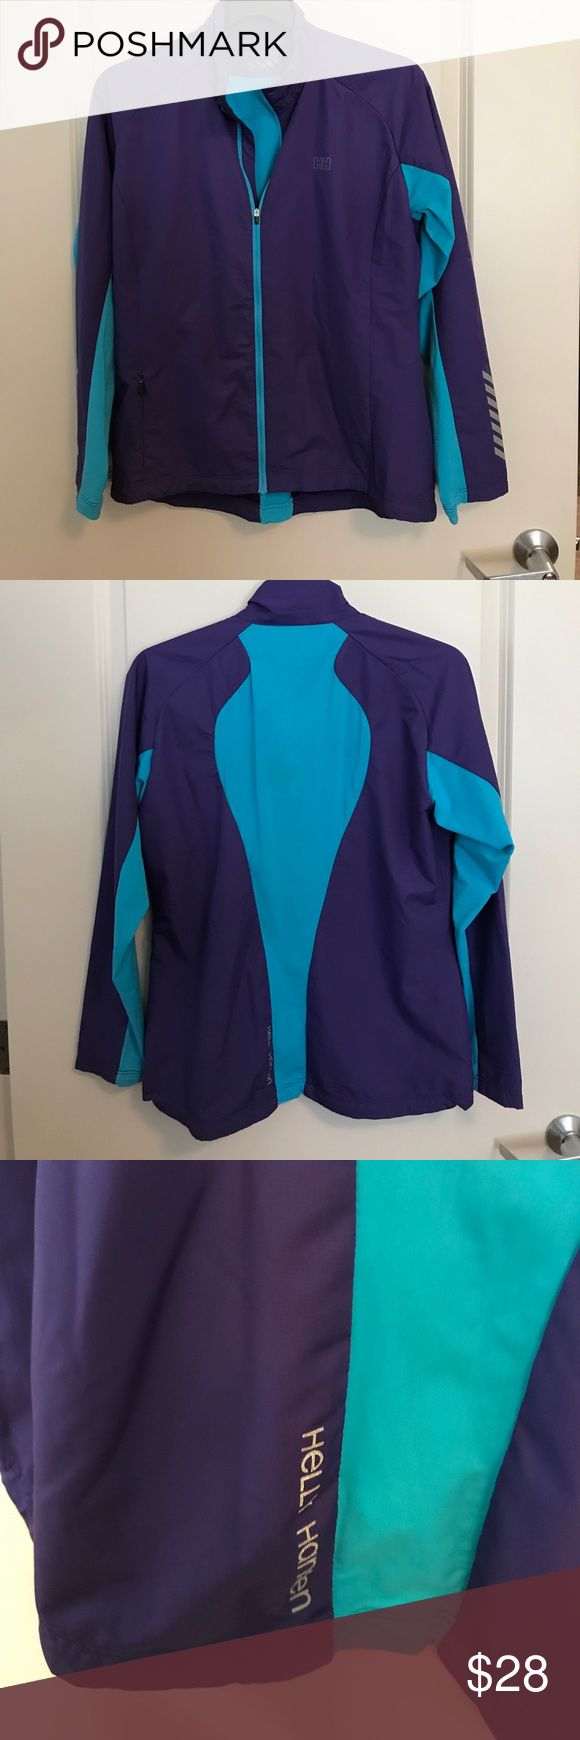 Helly Hansen Training jacket Great purple and teal or aqua color contrast . Worn one time. I bought at Disney World store at Epcot in Norway Sweden shop as I was cold and bought it too tight for waaaay too much $ Helly Hansen Jackets & Coats